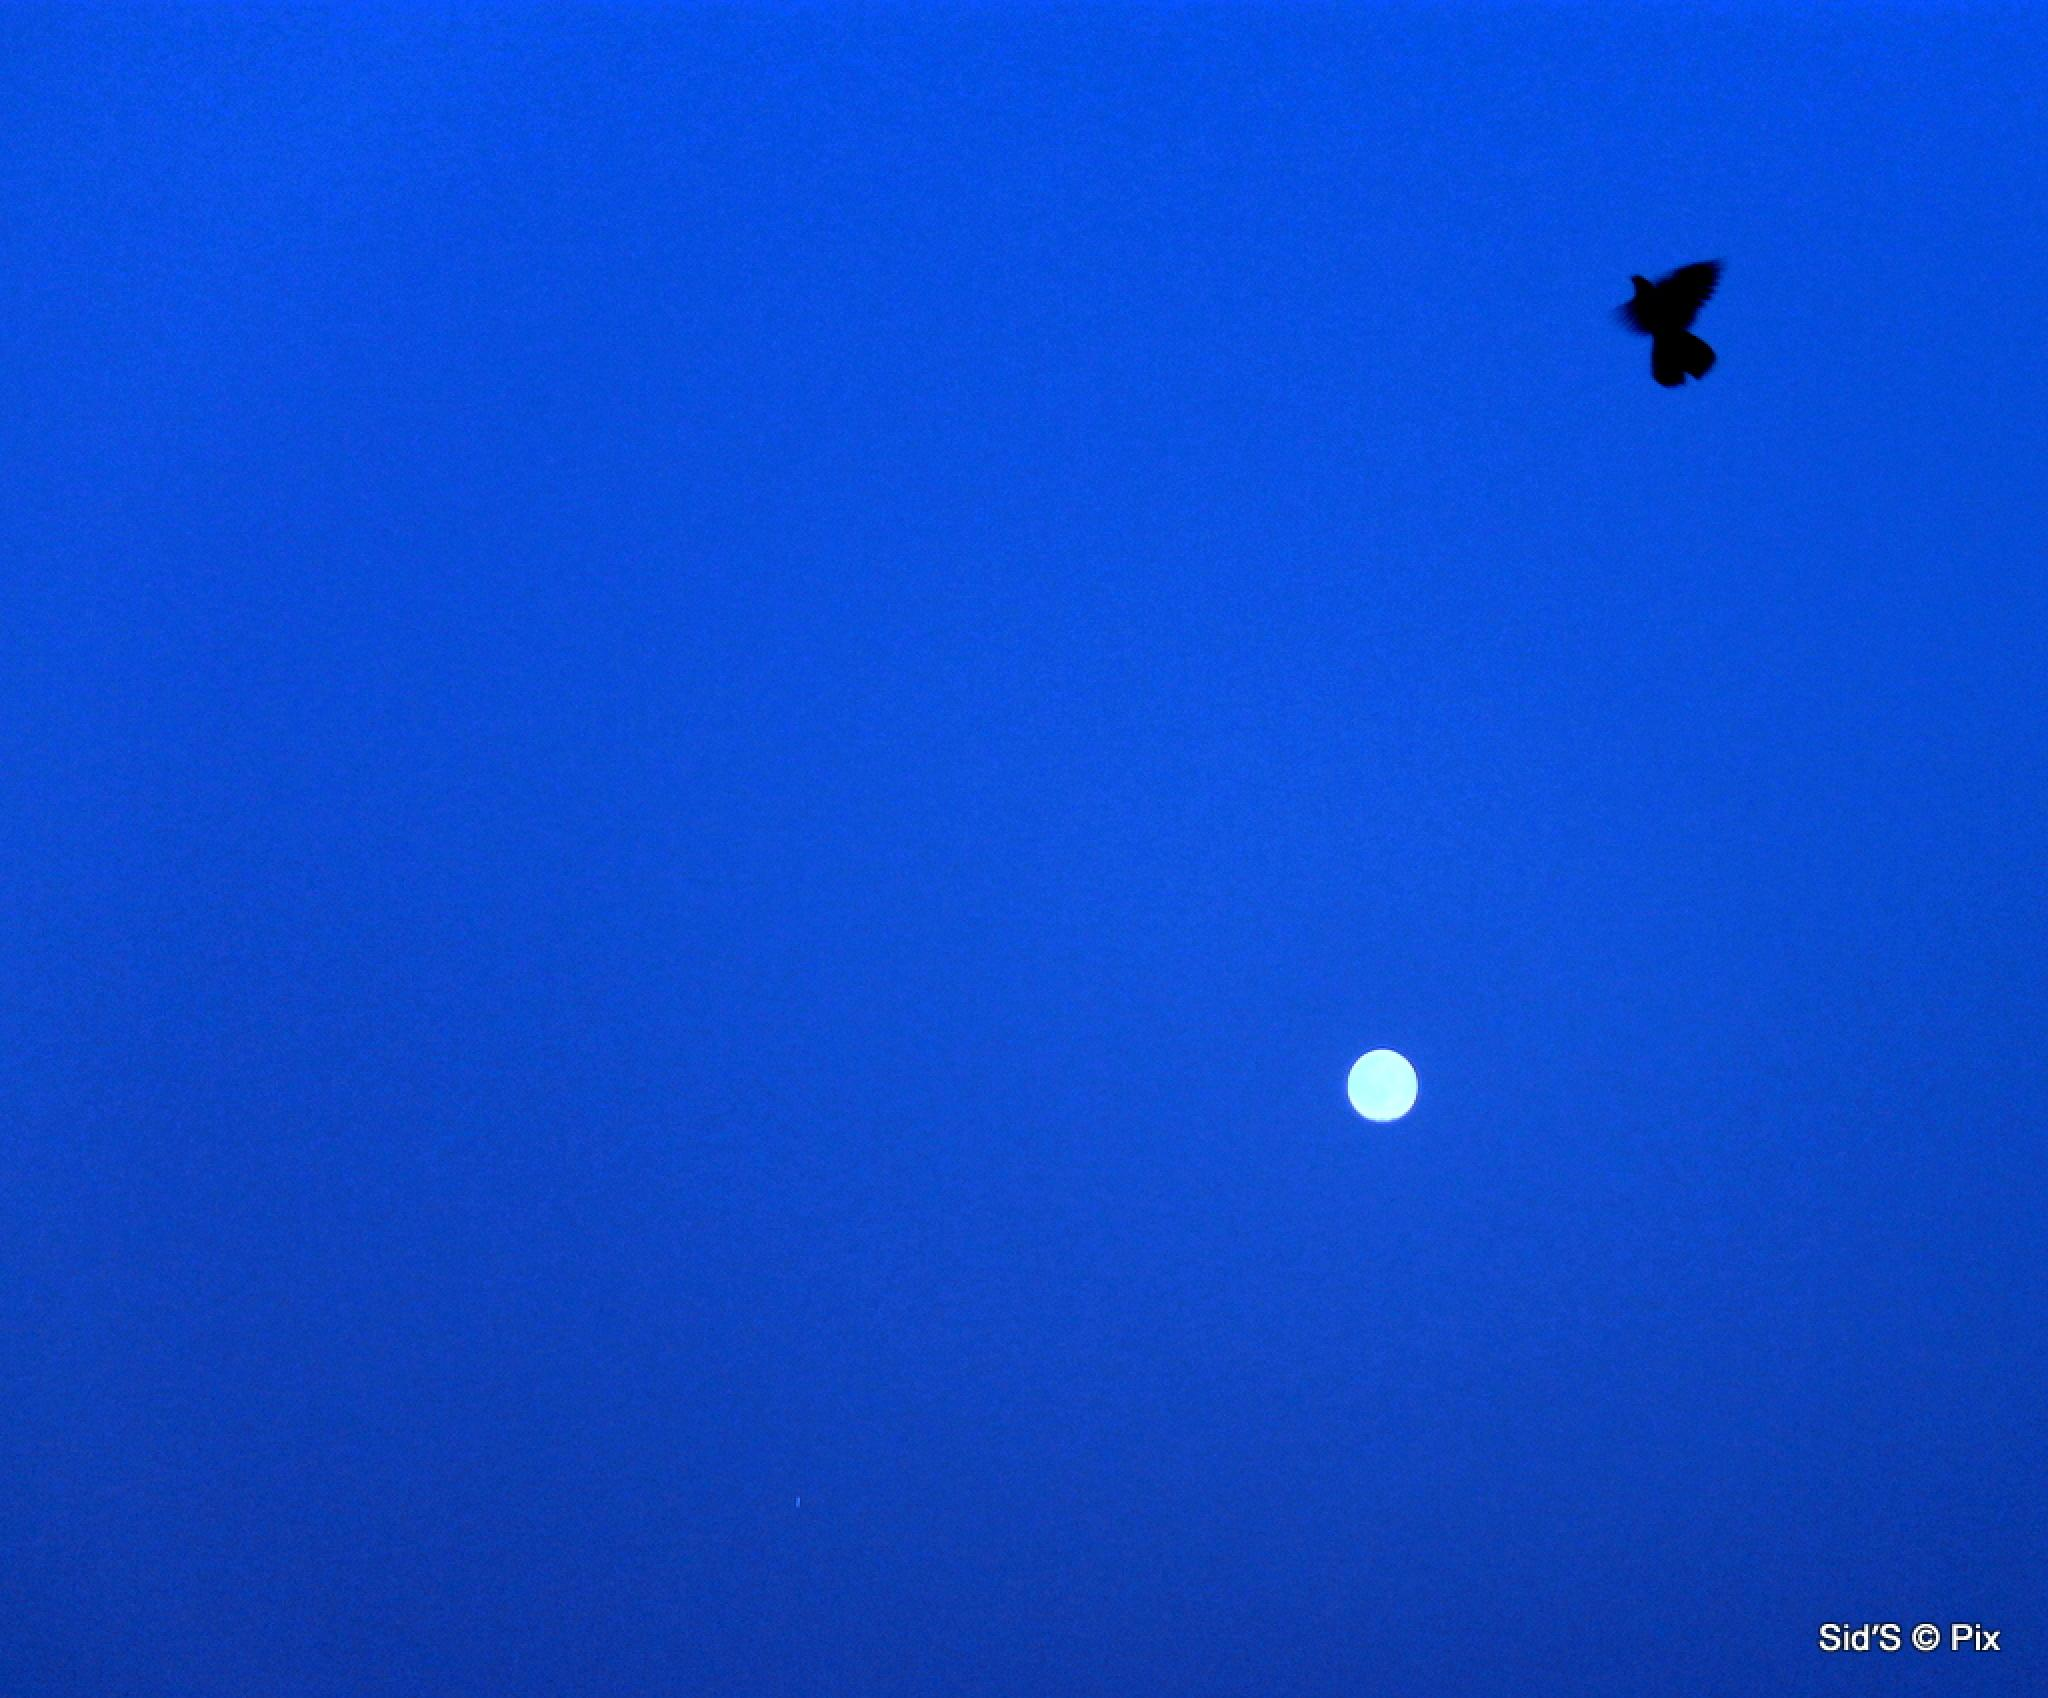 One flew over the moon by Siddharth Sanyal